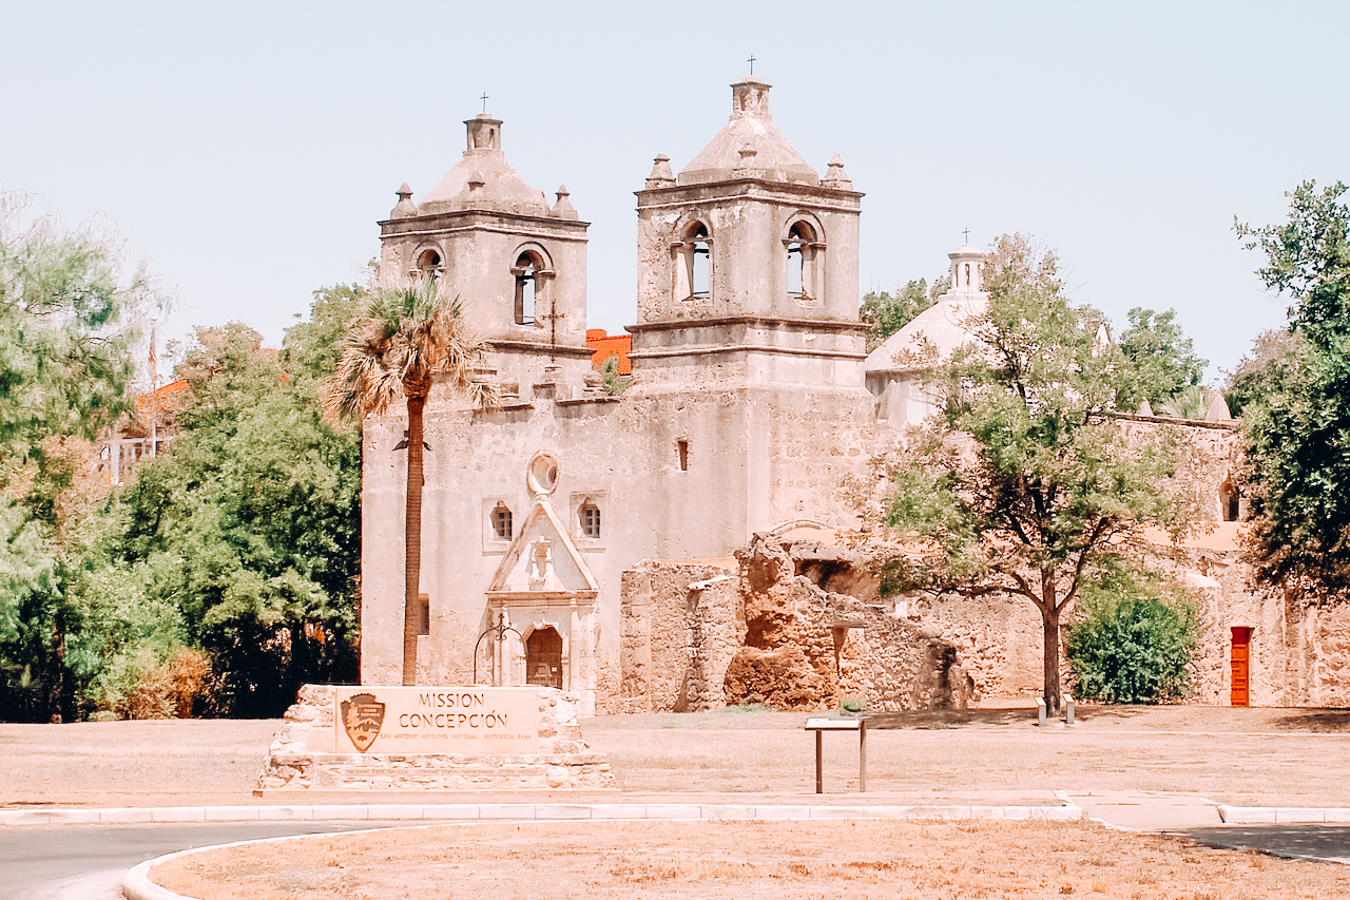 Building in San Antonio Missions National Historical Park